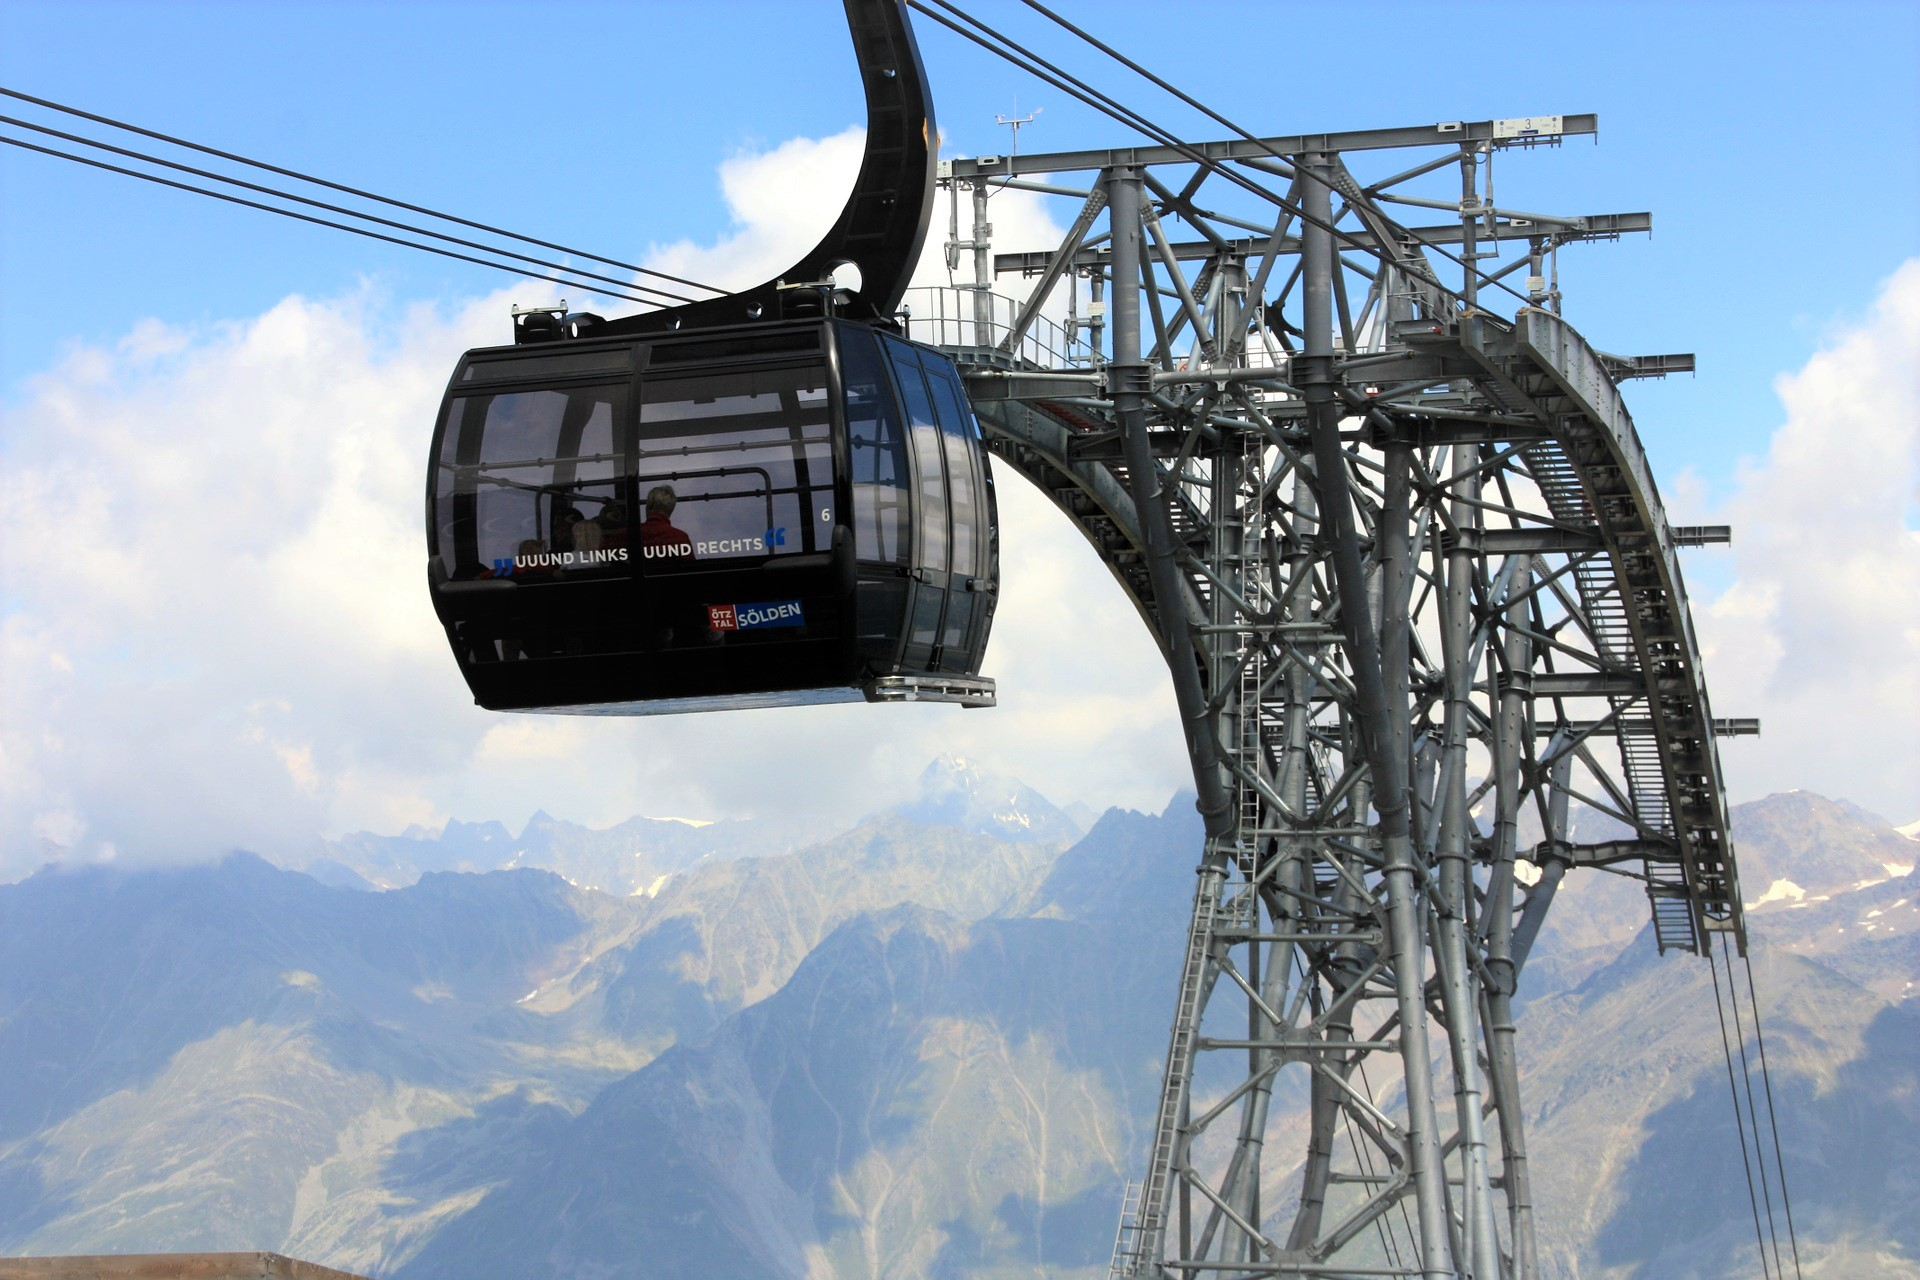 solden-cable-car.jpg